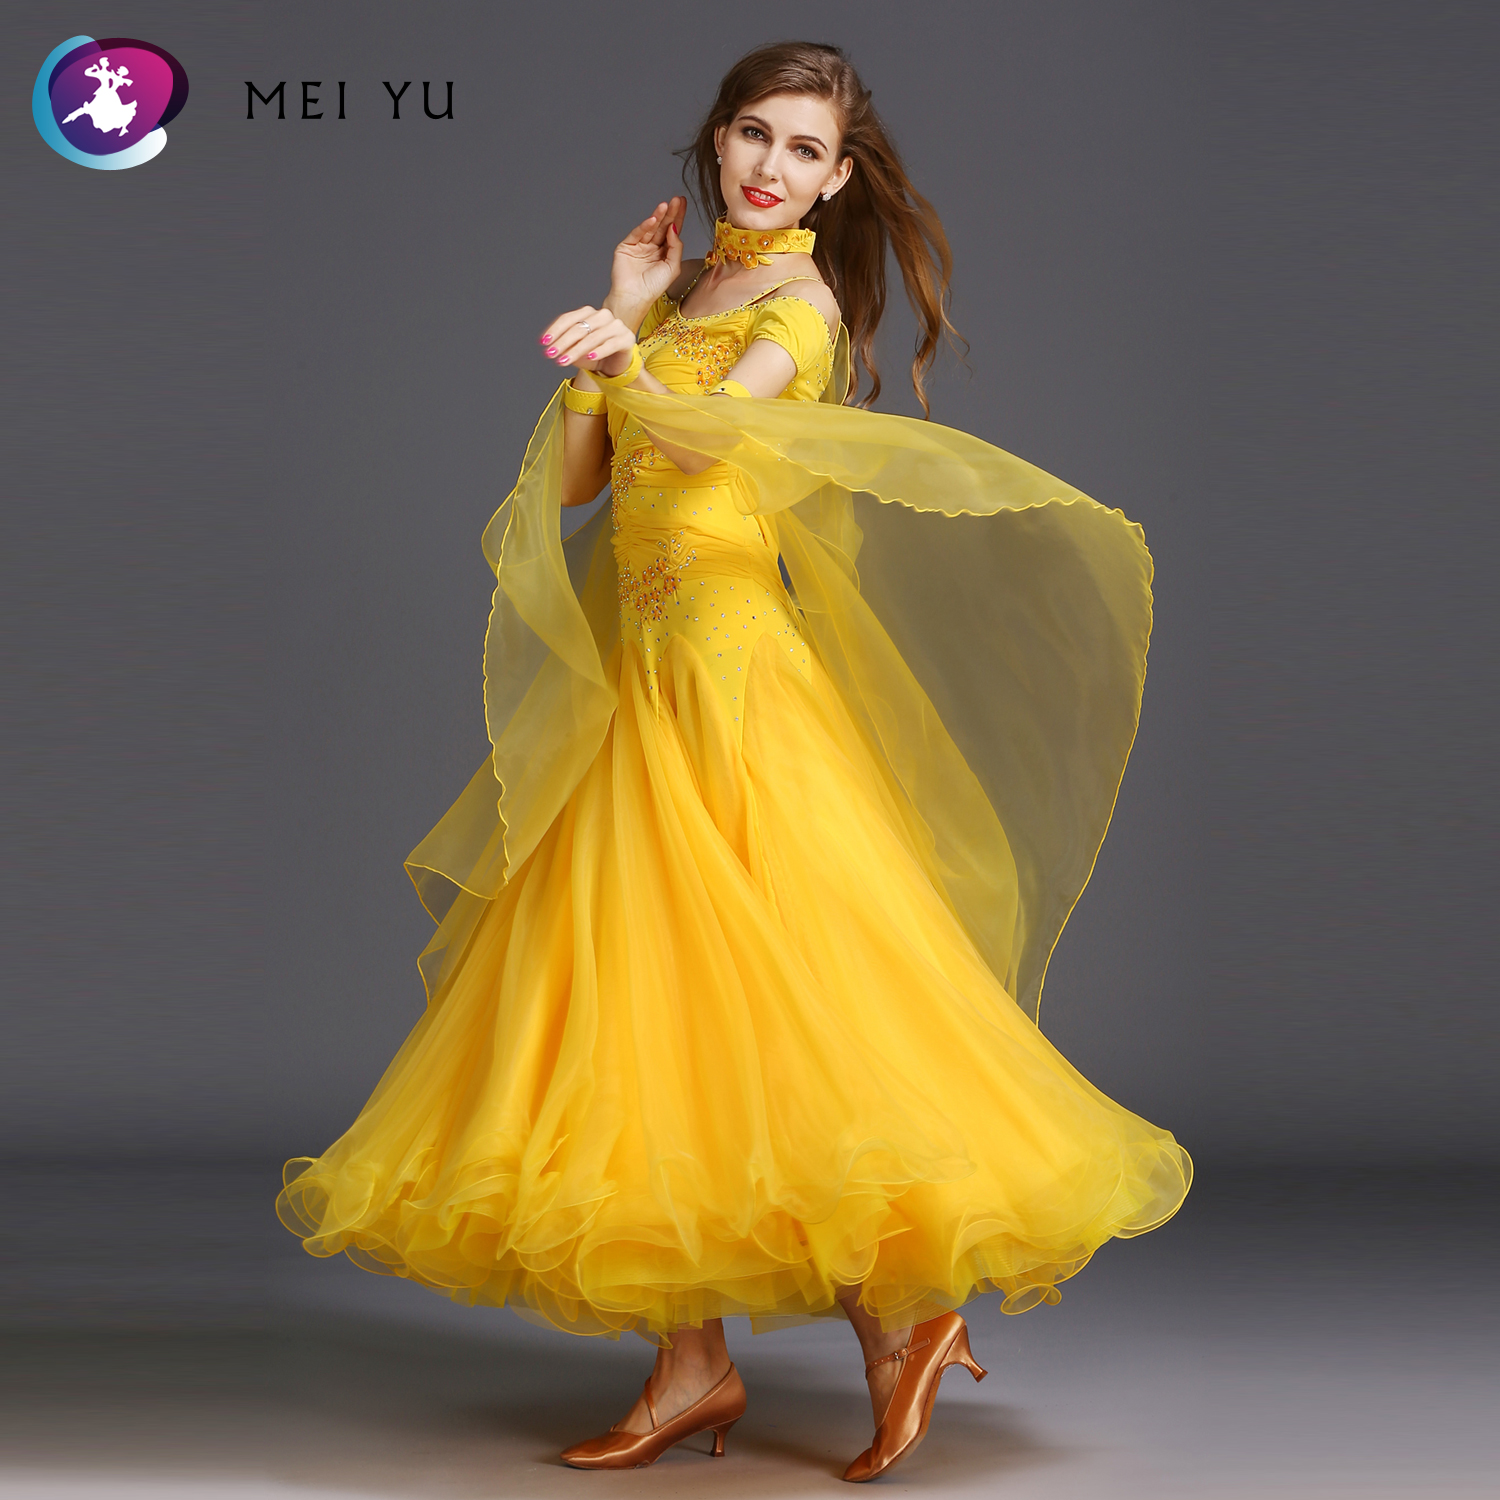 Objective Mei Yu Hb183 Modern Dance Costume Women Lady Adult Waltzing Tango Rhinestone Dancing Dress Ballroom Costume Evening Party Dress Ballroom Novelty & Special Use